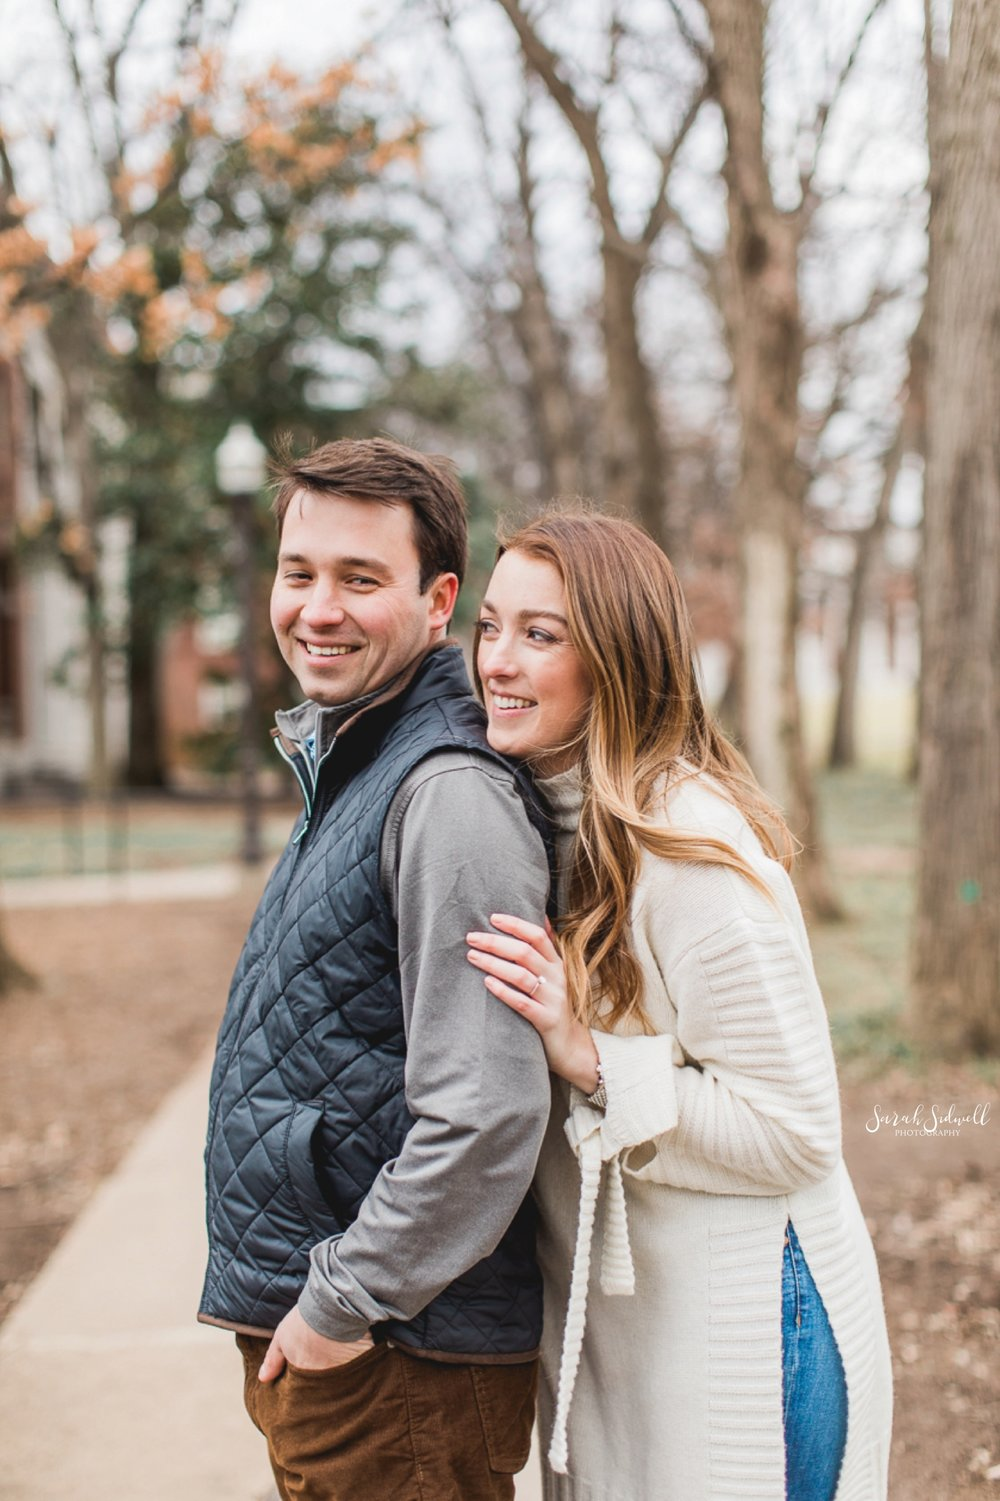 A woman leans into her fiance from behind.